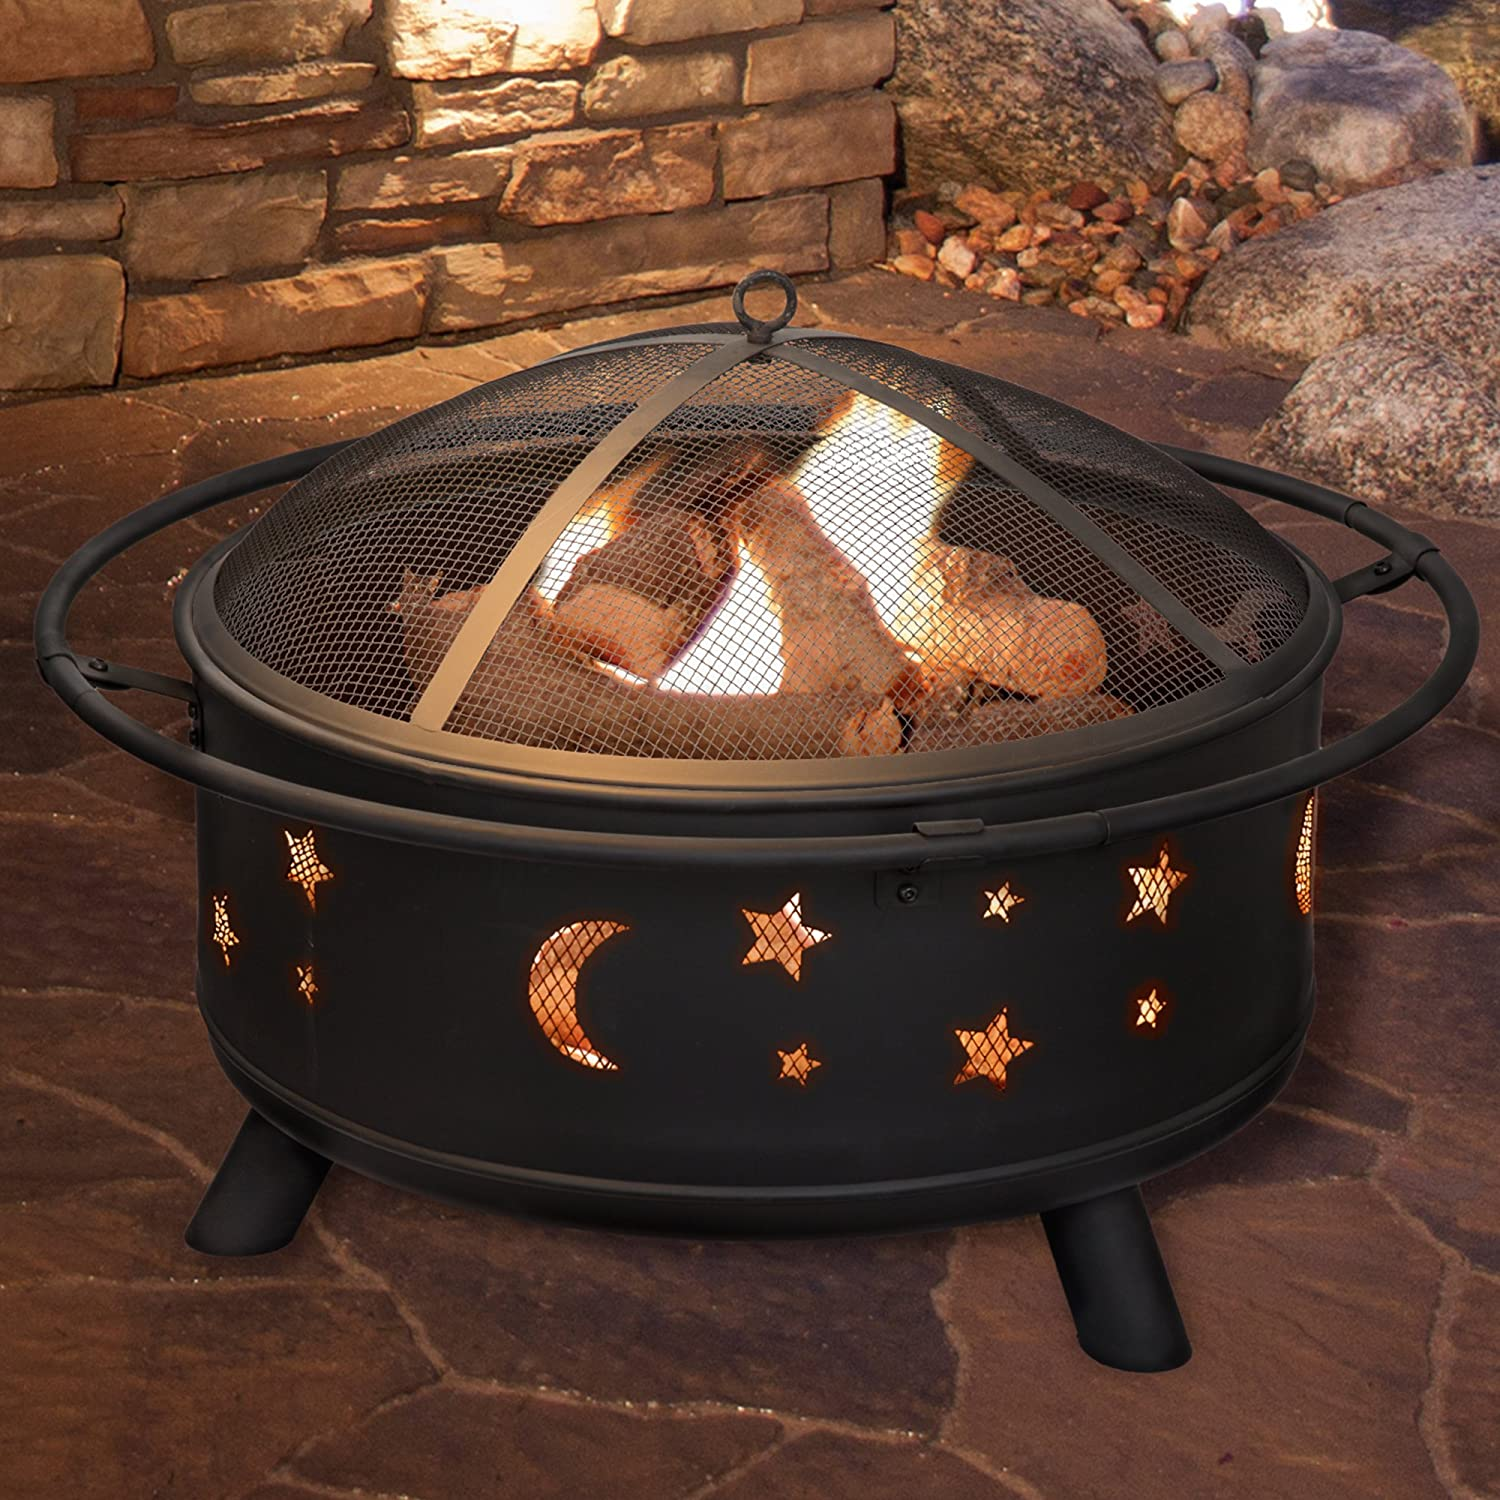 Fire Pit Set, Wood Burning Pit - Includes Screen, Cover and Log Poker- Great for Outdoor and Patio, 30 inch Round Star and Moon Firepit by Pure Garden